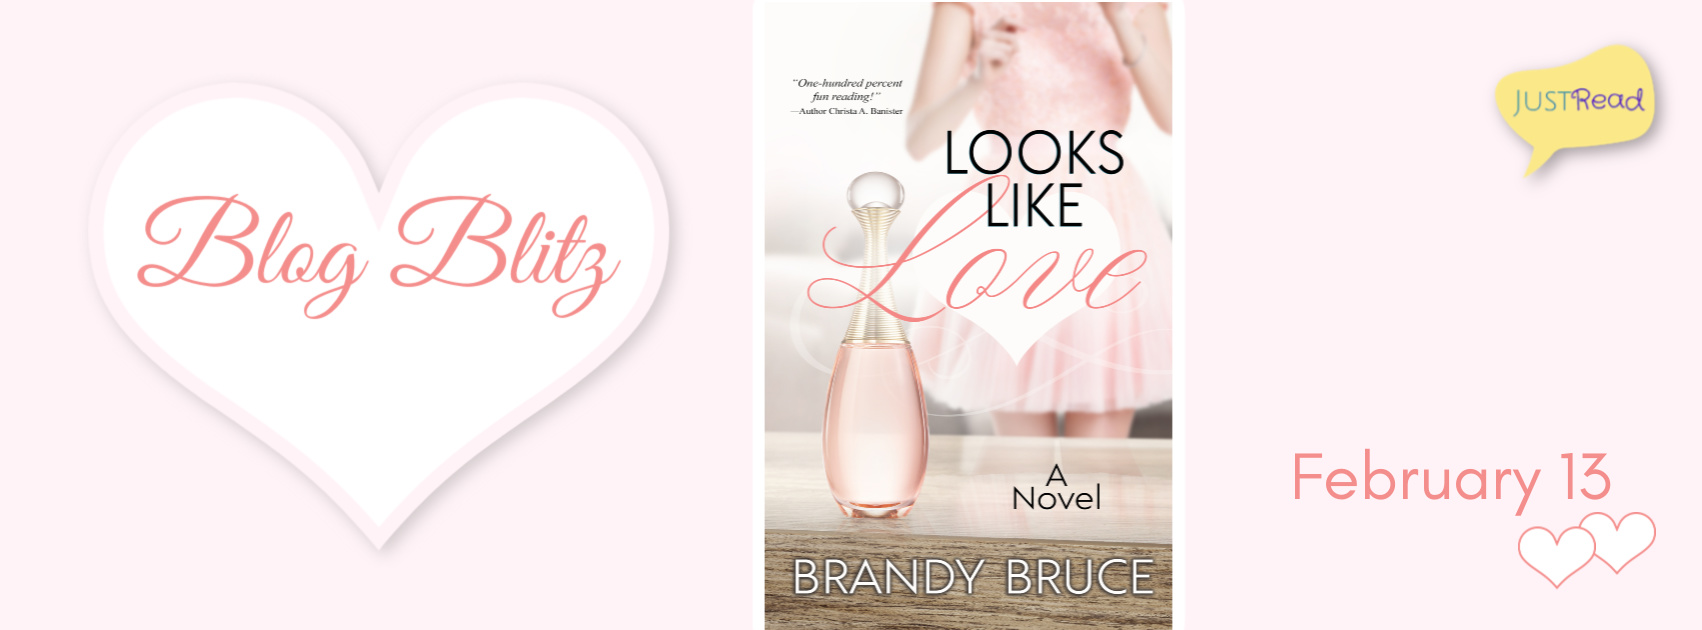 Welcome to the Looks Like Love Blog Blitz!